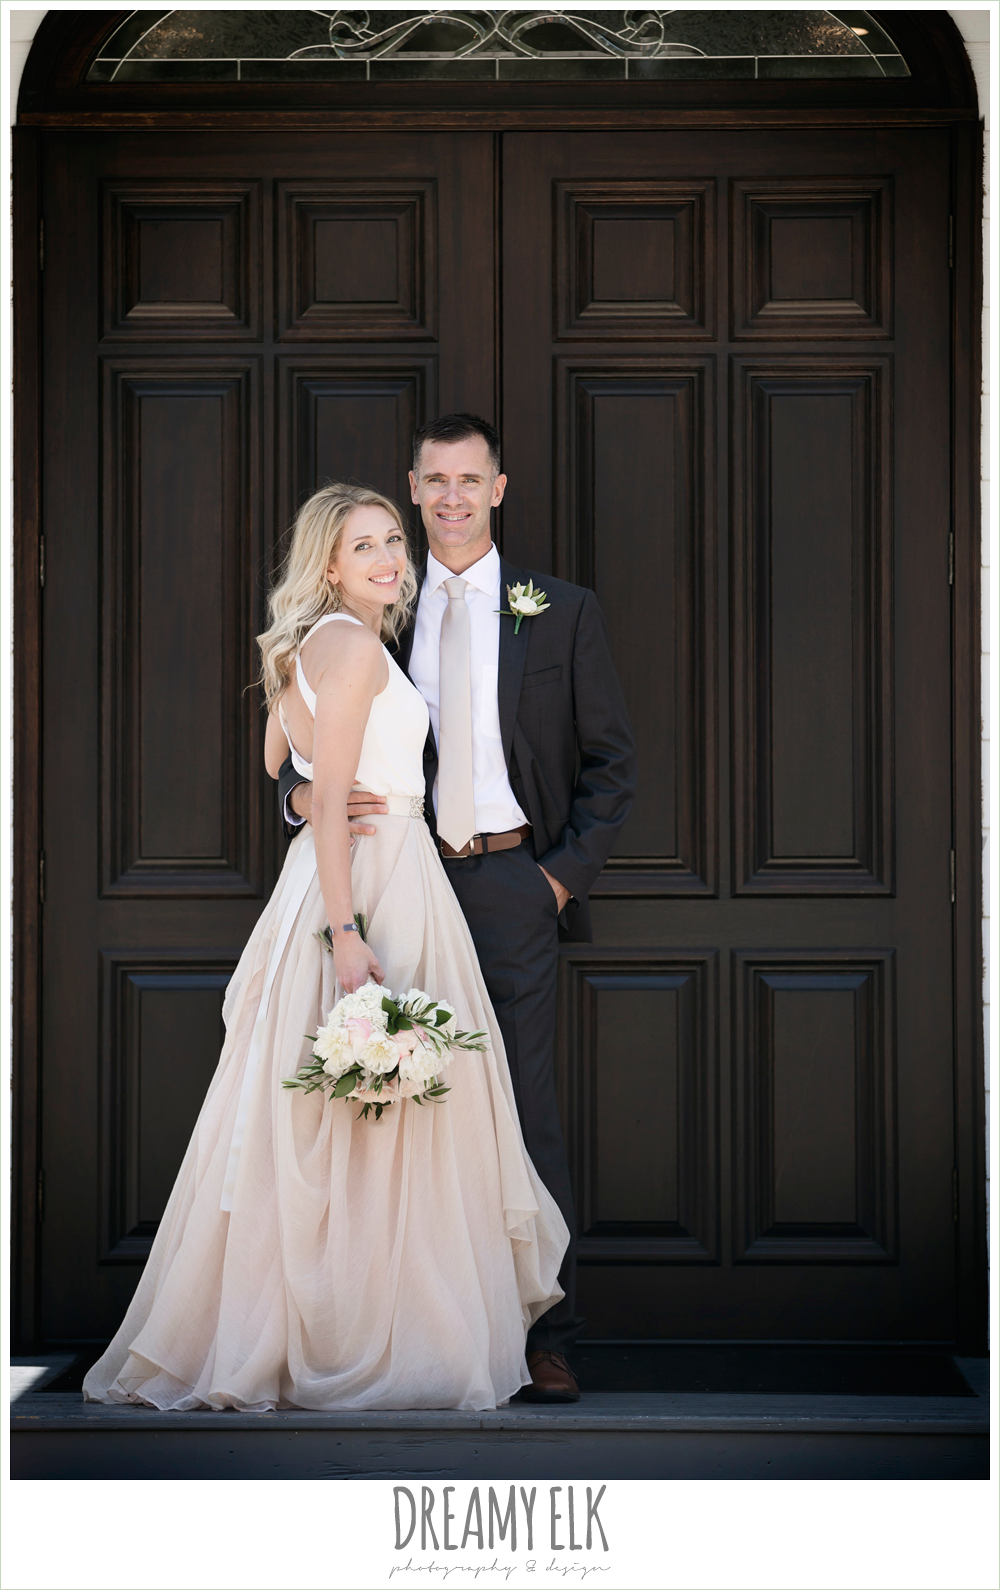 outdoor bride and groom photo, hugo boss groom's suit, southern protocol bridal boutique, carol hannah kensington halter and blush skirt, july summer morning wedding, ashelynn manor, magnolia, texas {dreamy elk photography and design}